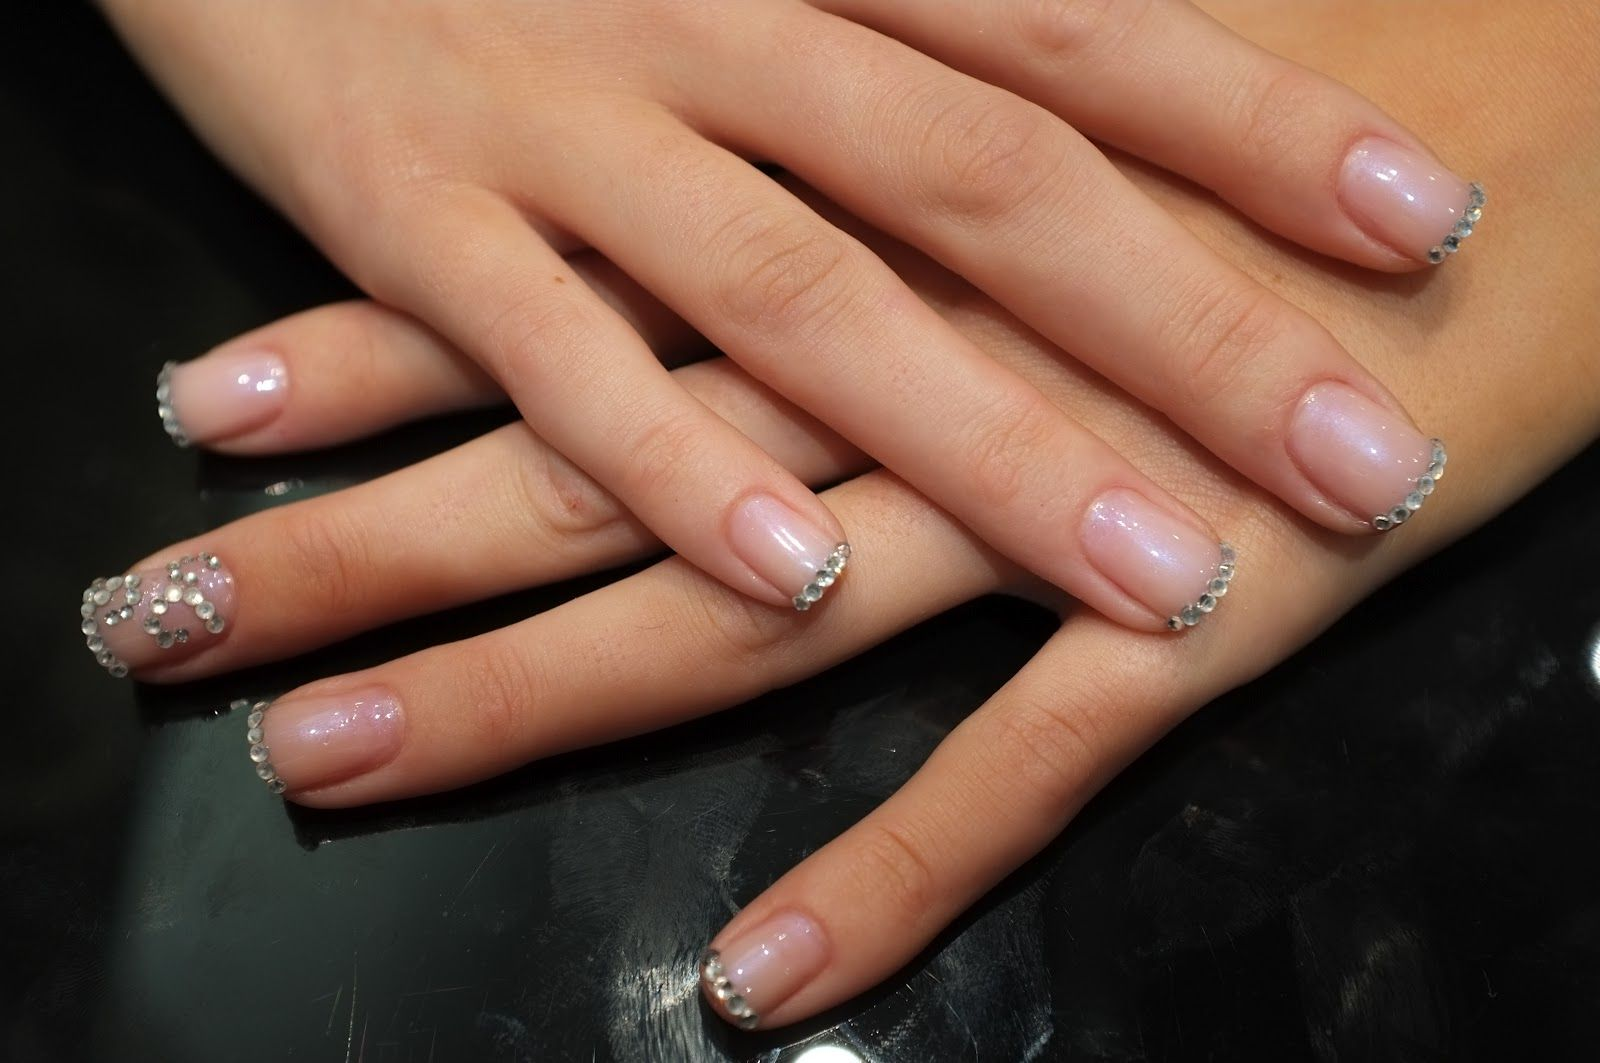 Diamond Nails - Glamorous | Nail Colors & Designs to Glamorize your ...